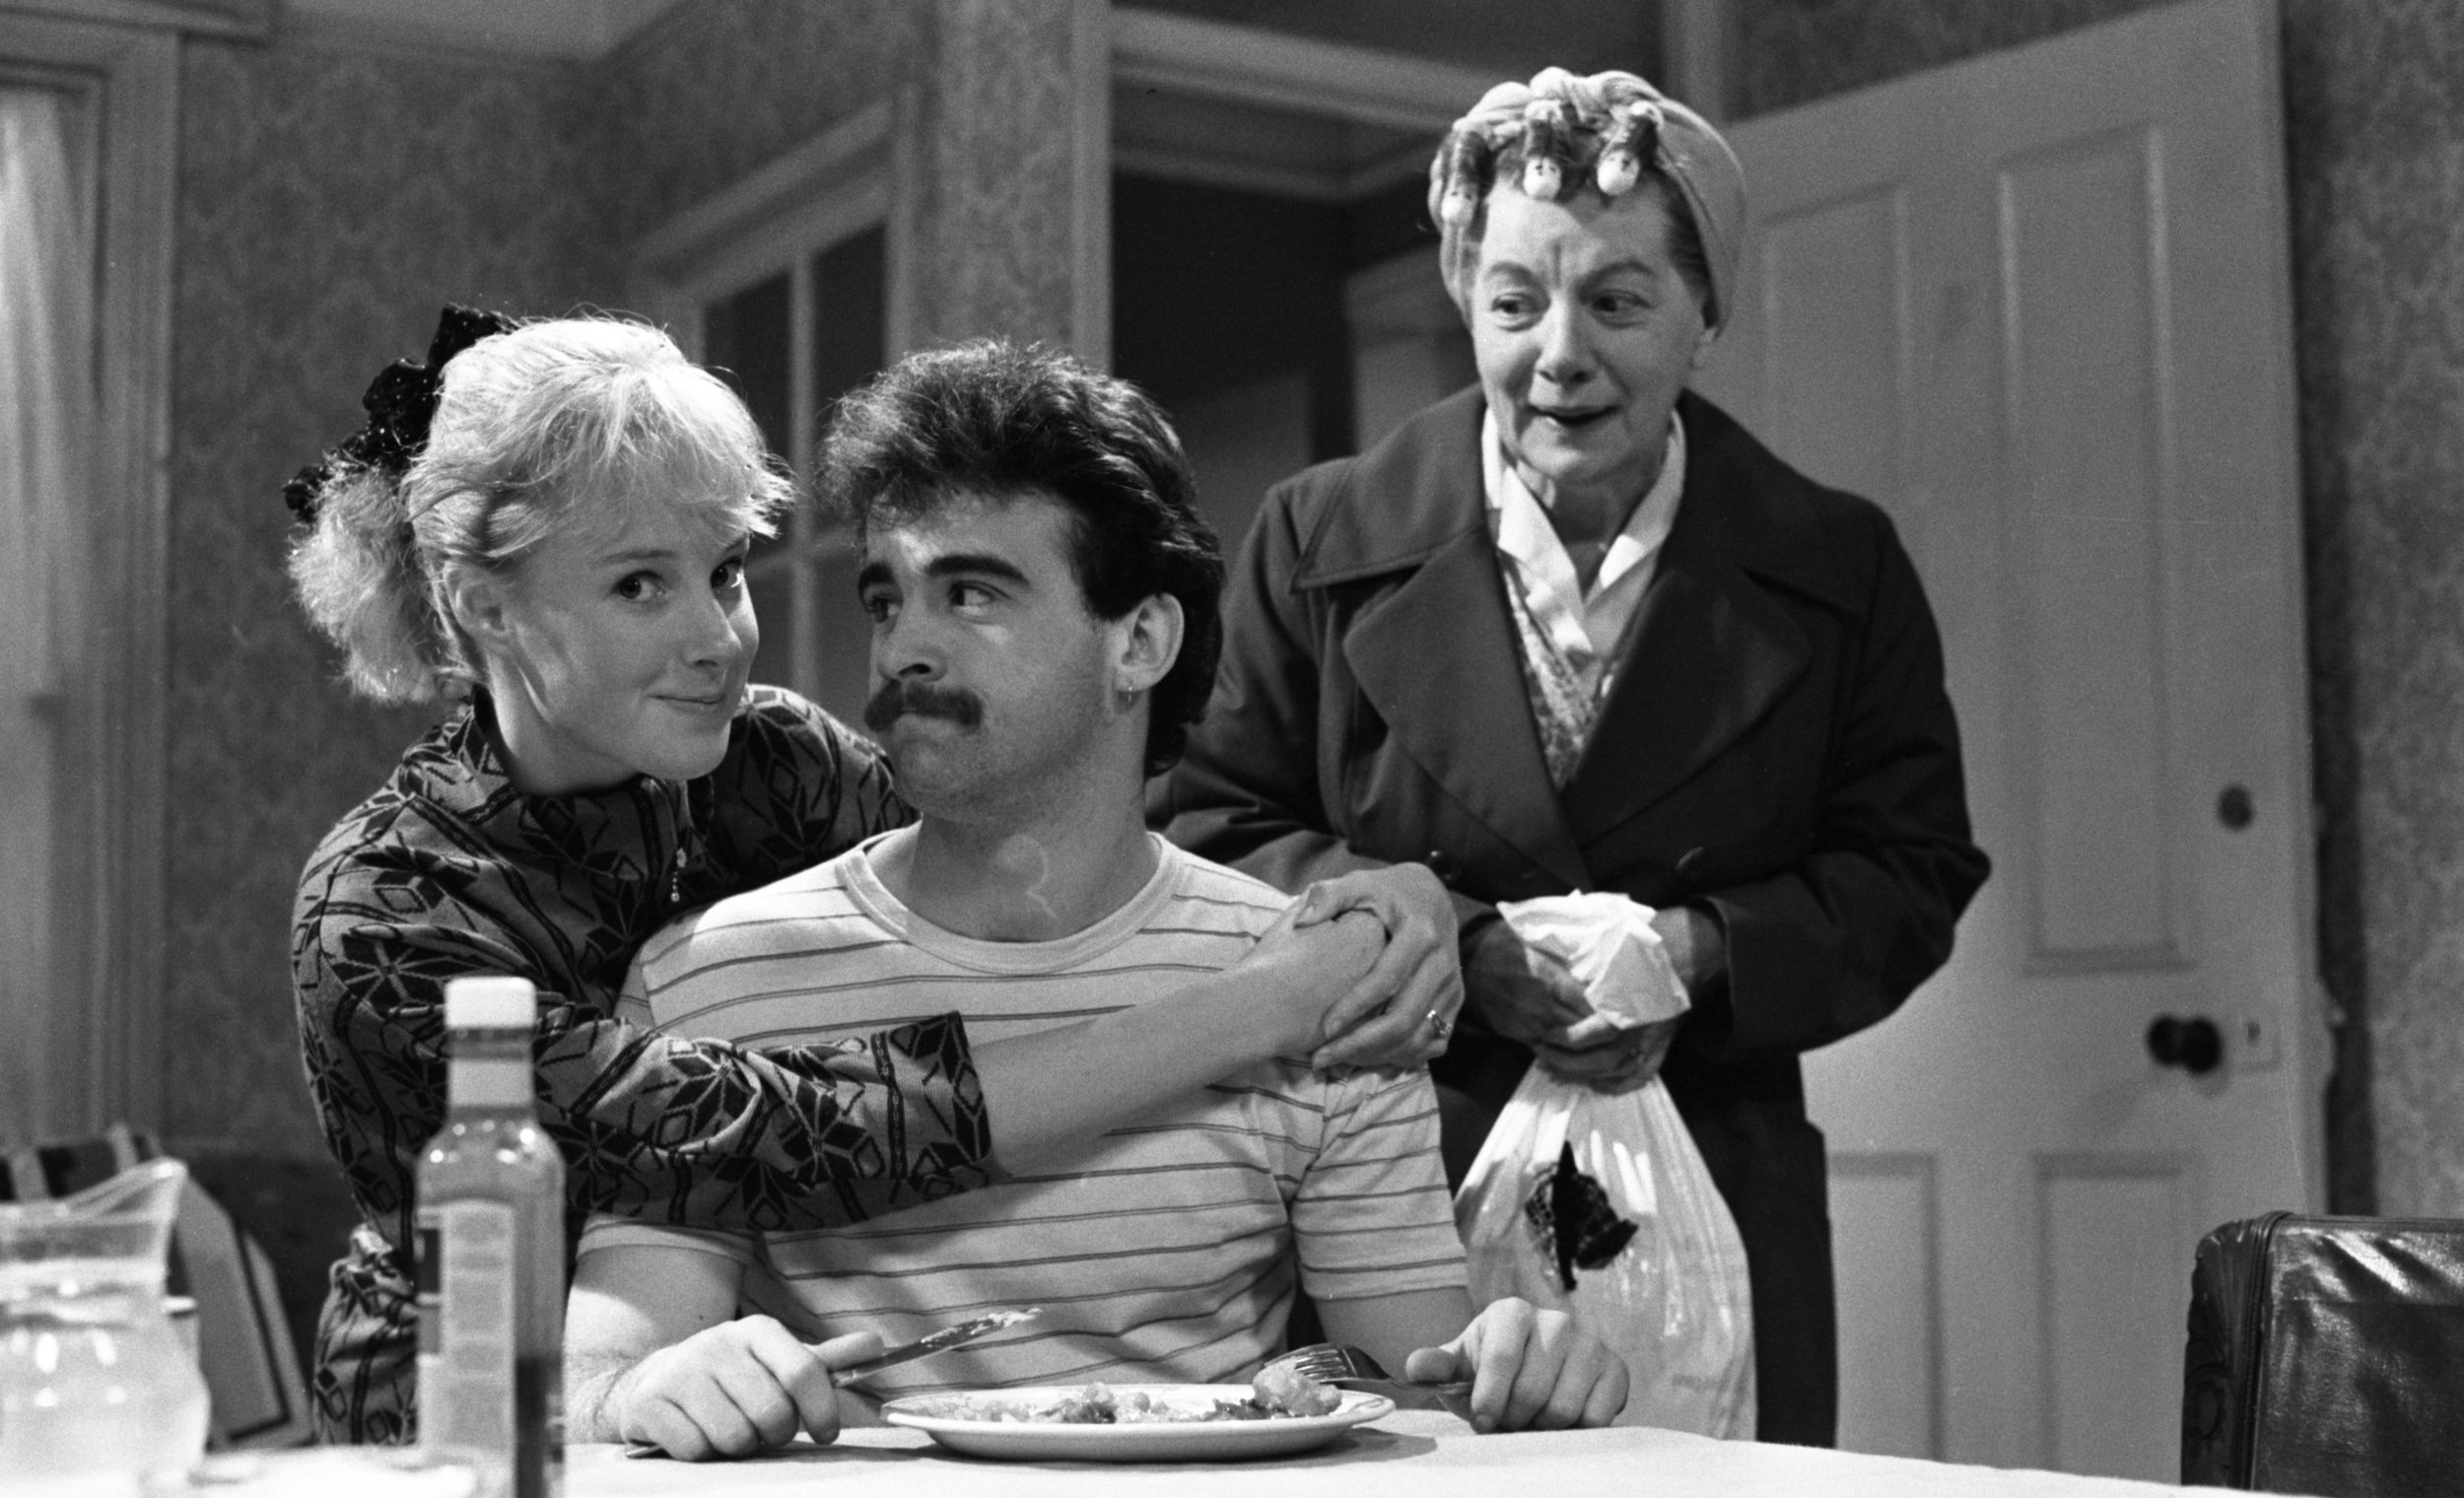 Sally in 1987 with Michael and Jean Alexander (as Hilda Ogden)